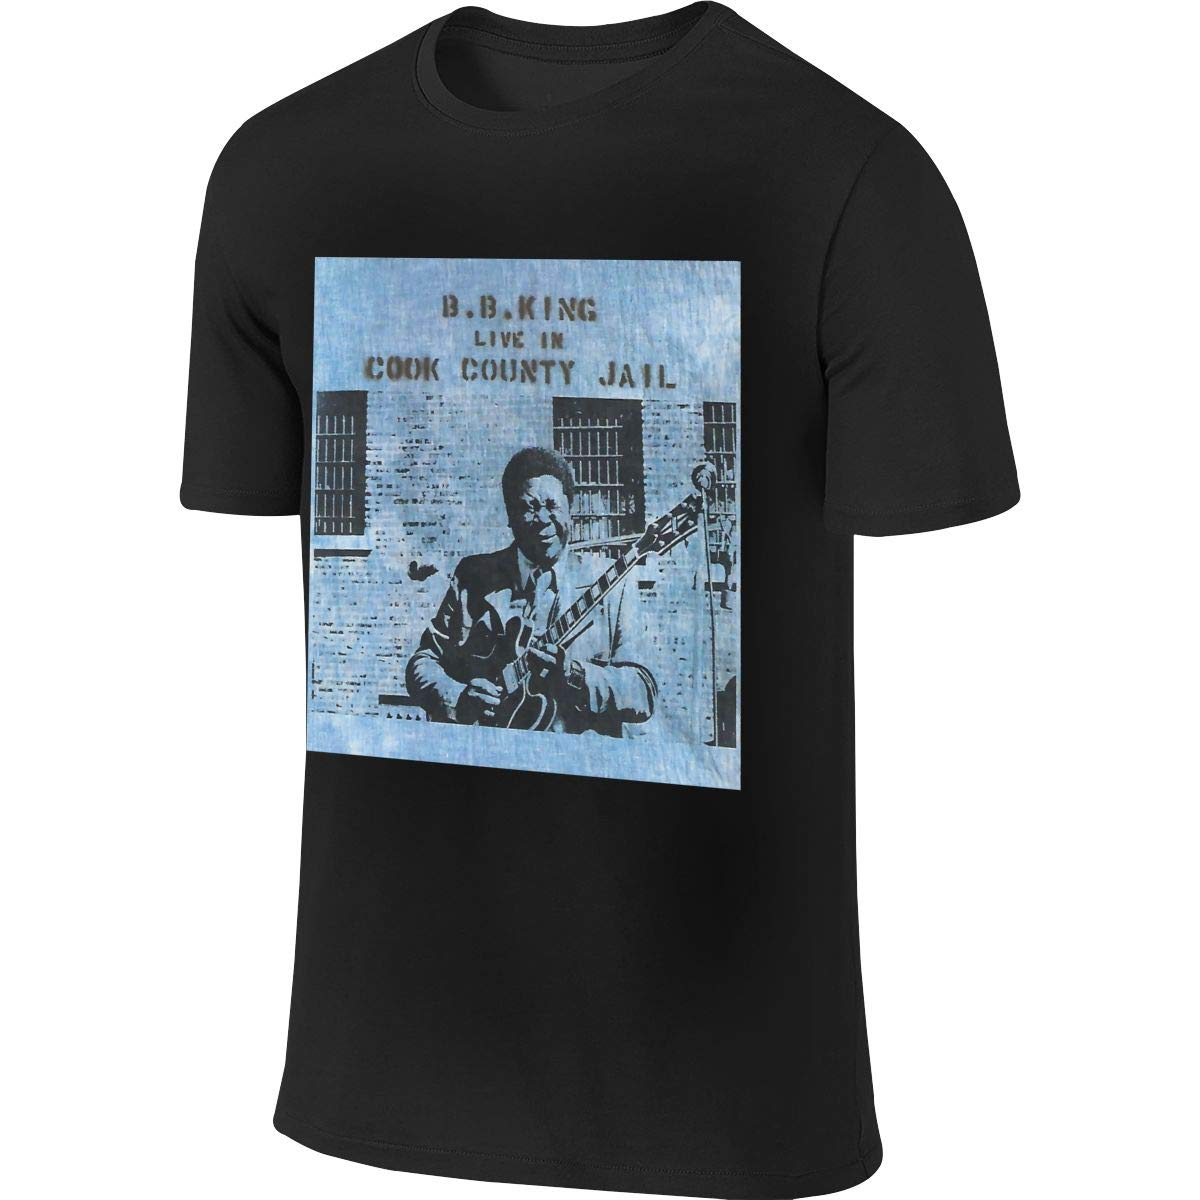 King Live In Cook County Jail And Men's Light Fit Light Fit Shirts